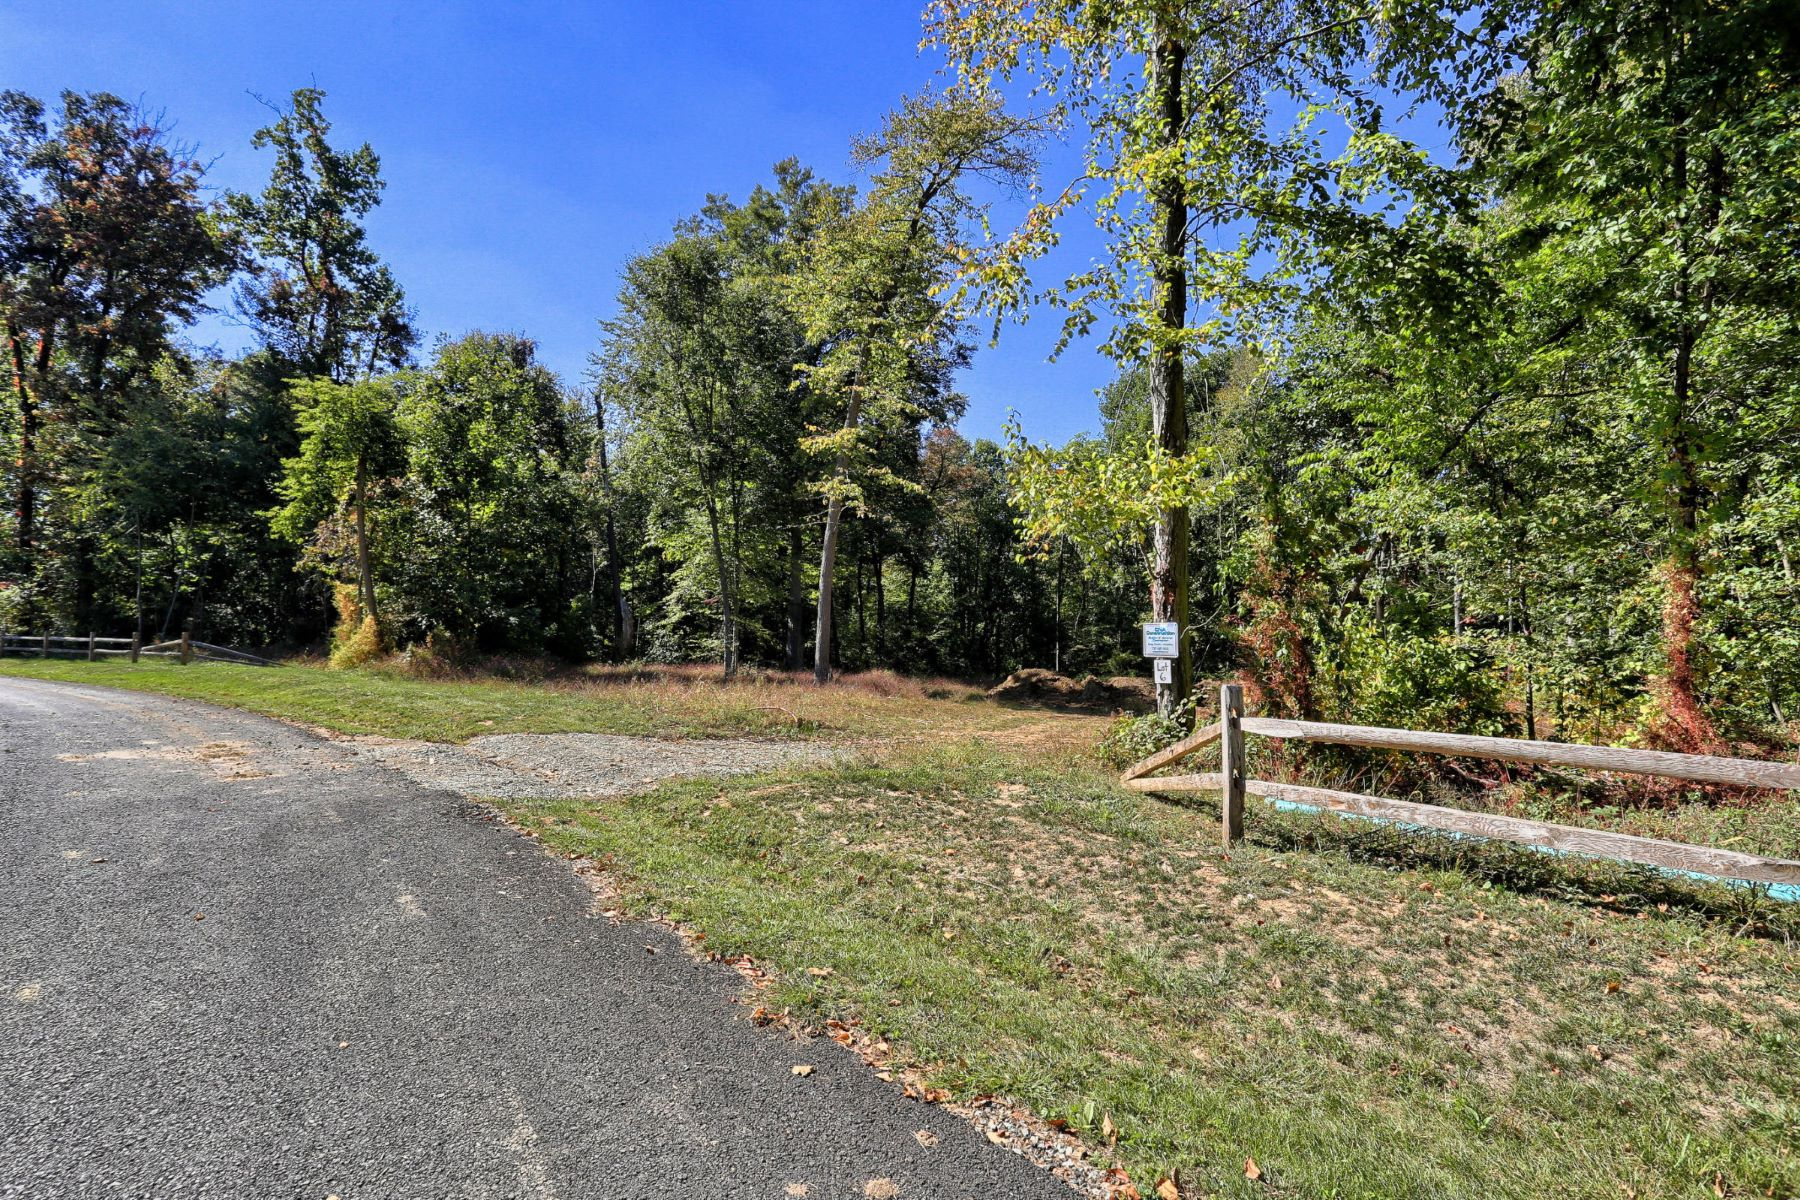 Land for Sale at Hilldale Estates 5 Joann Lane Lot 6 Pequea, Pennsylvania 17565 United States